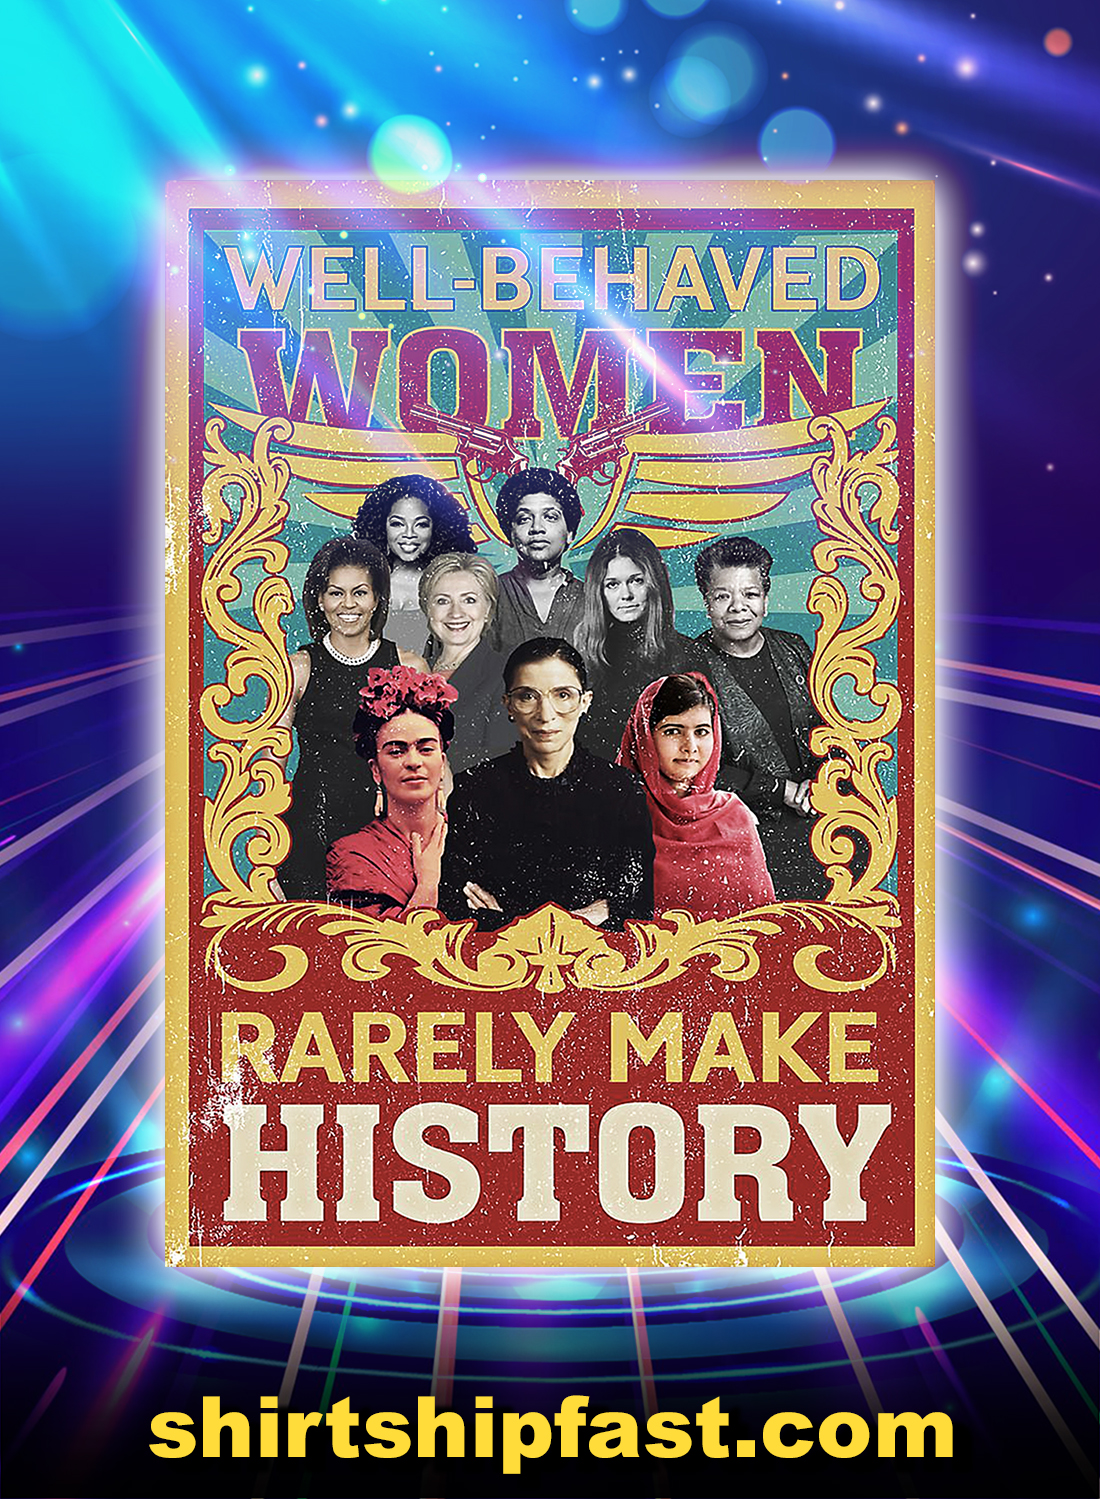 Well-behaved women rarely make history poster - A4